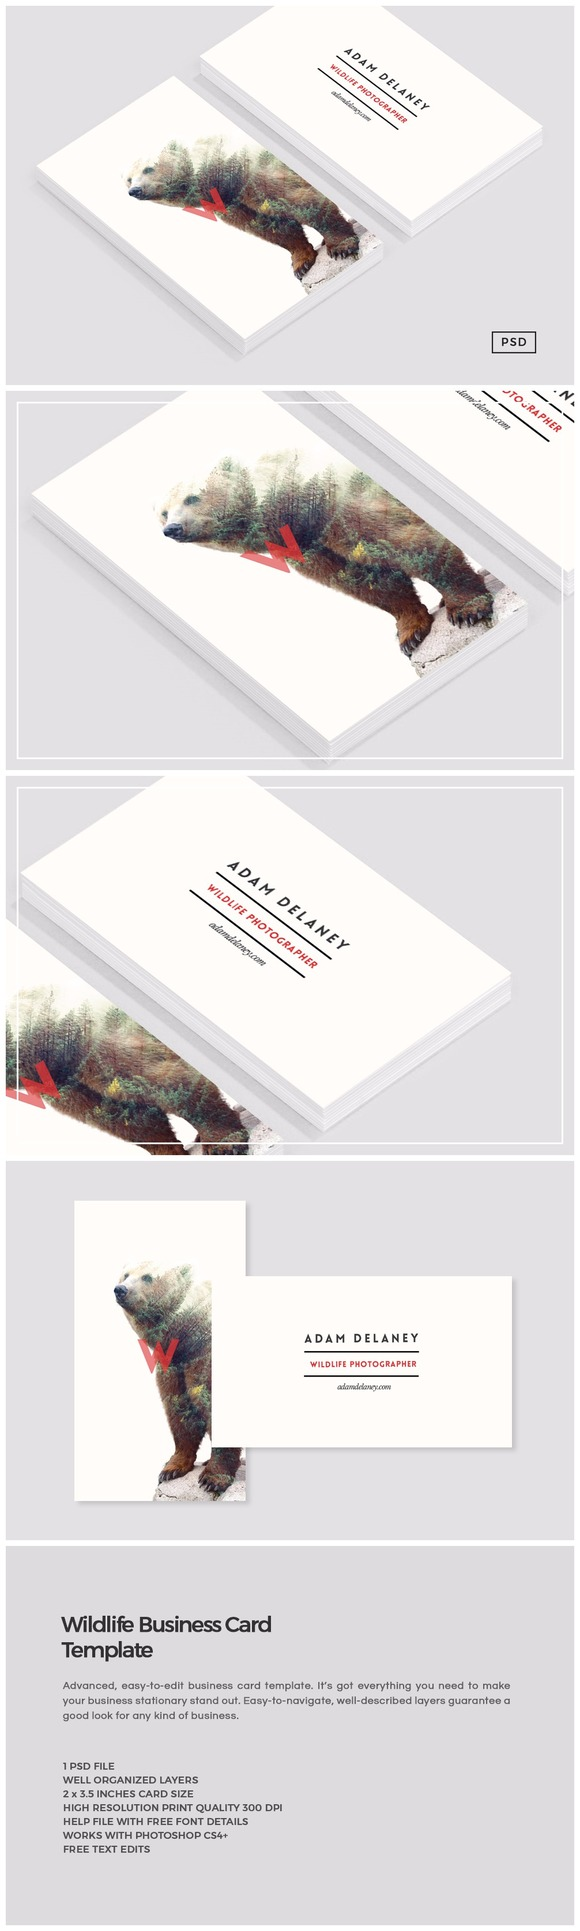 Wildlife Business Card Template By Design Co On Creativemarket